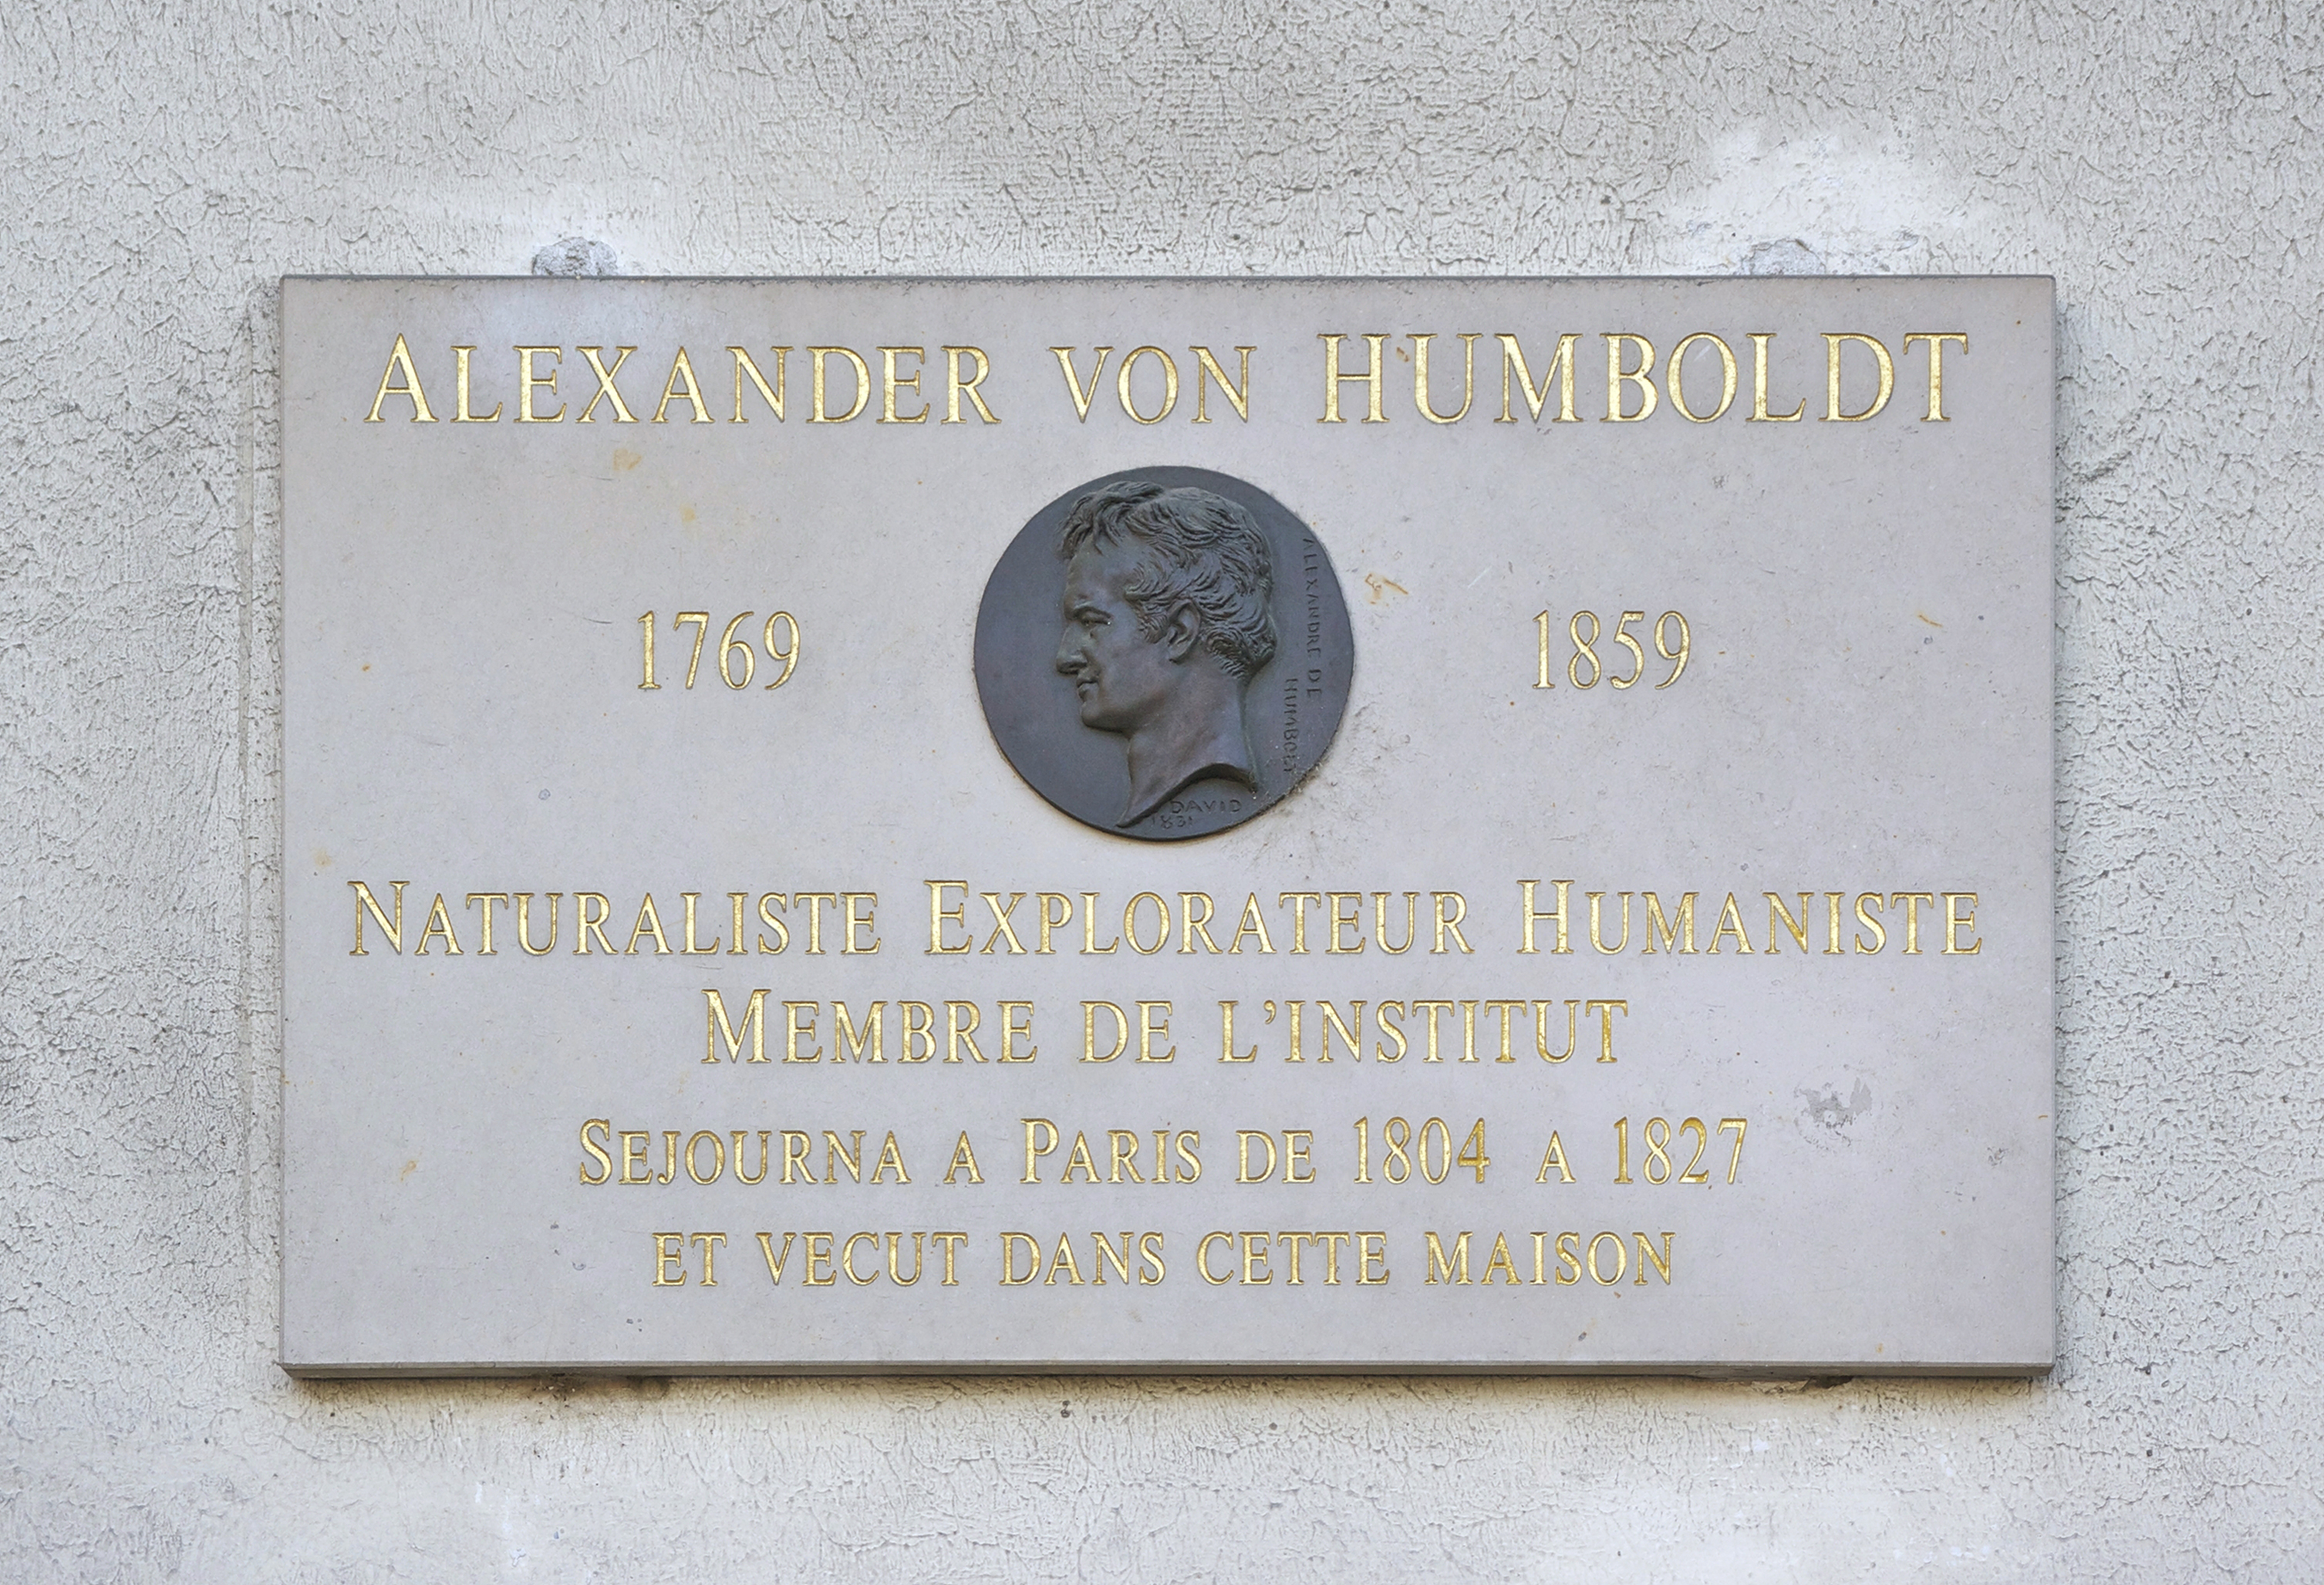 http://upload.wikimedia.org/wikipedia/commons/8/82/Plaque_Humboldt_Paris.jpg